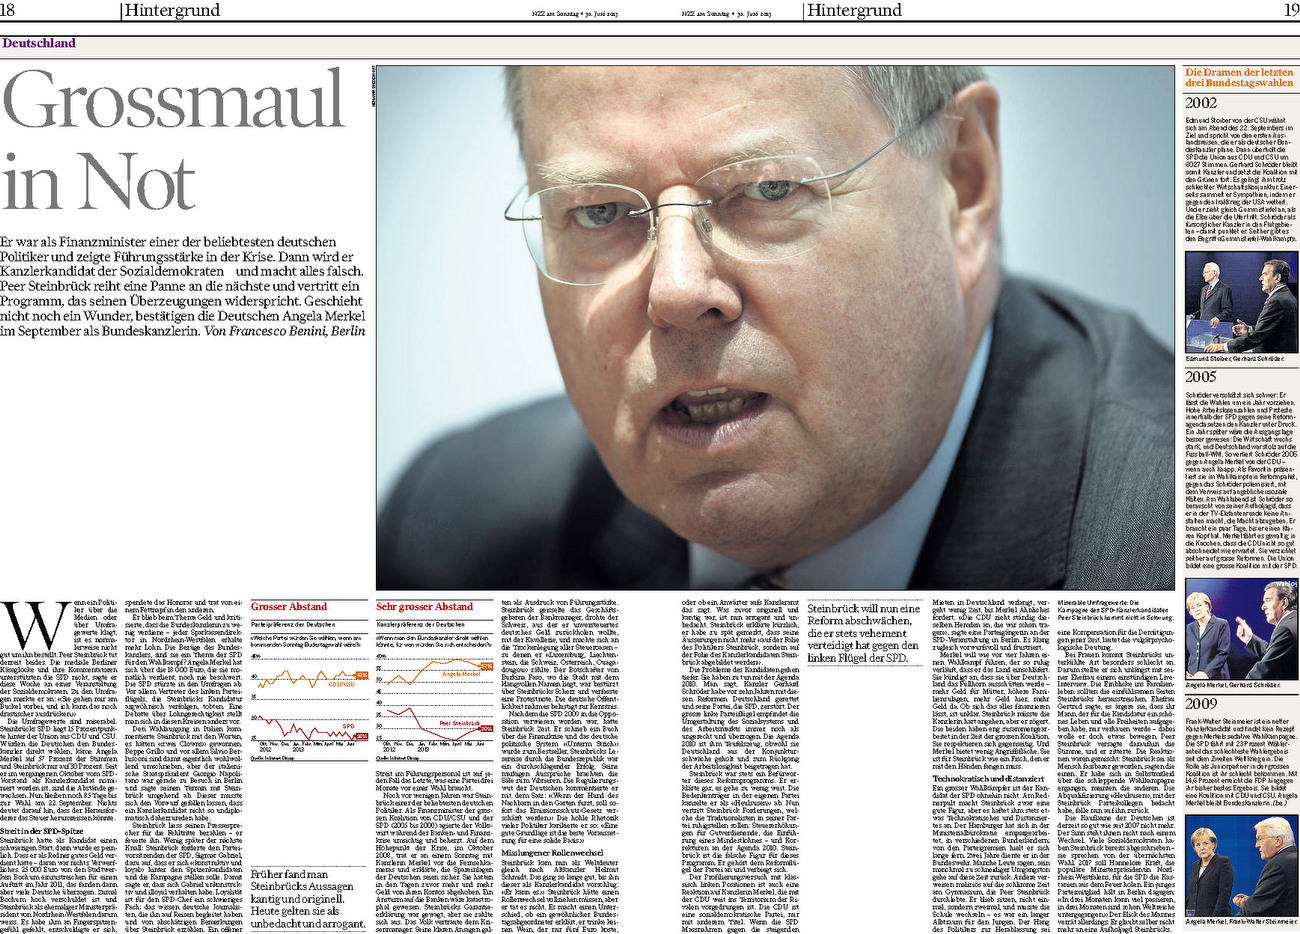 NZZ am Sonntag, Switzerland, 30.06.2013, German Social Democrats (SPD) chancellor candidate Peer Steinbrueck